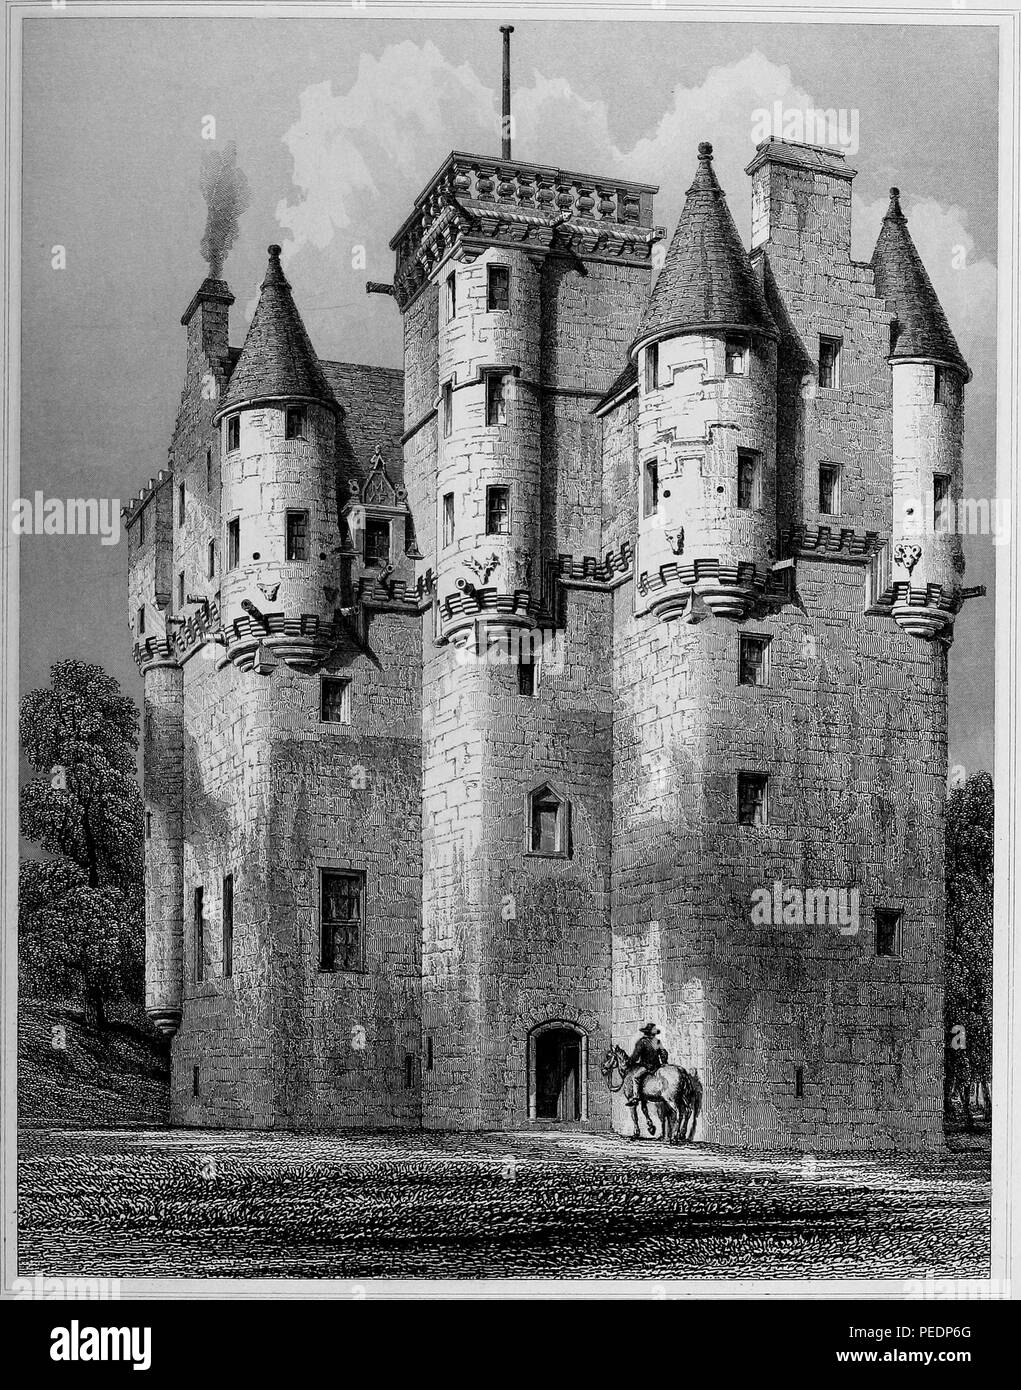 Black and white print showing a view of 'Craigievar Castle, ' a Scottish baronial style structure with multiple turrets and a harled (plastered) exterior, located in Alford, Aberdeenshire, Scotland, with a man on horseback in the foreground, engraved by JH Le Keux after a drawing by RW Billings, 1845. Courtesy Internet Archive. () - Stock Image